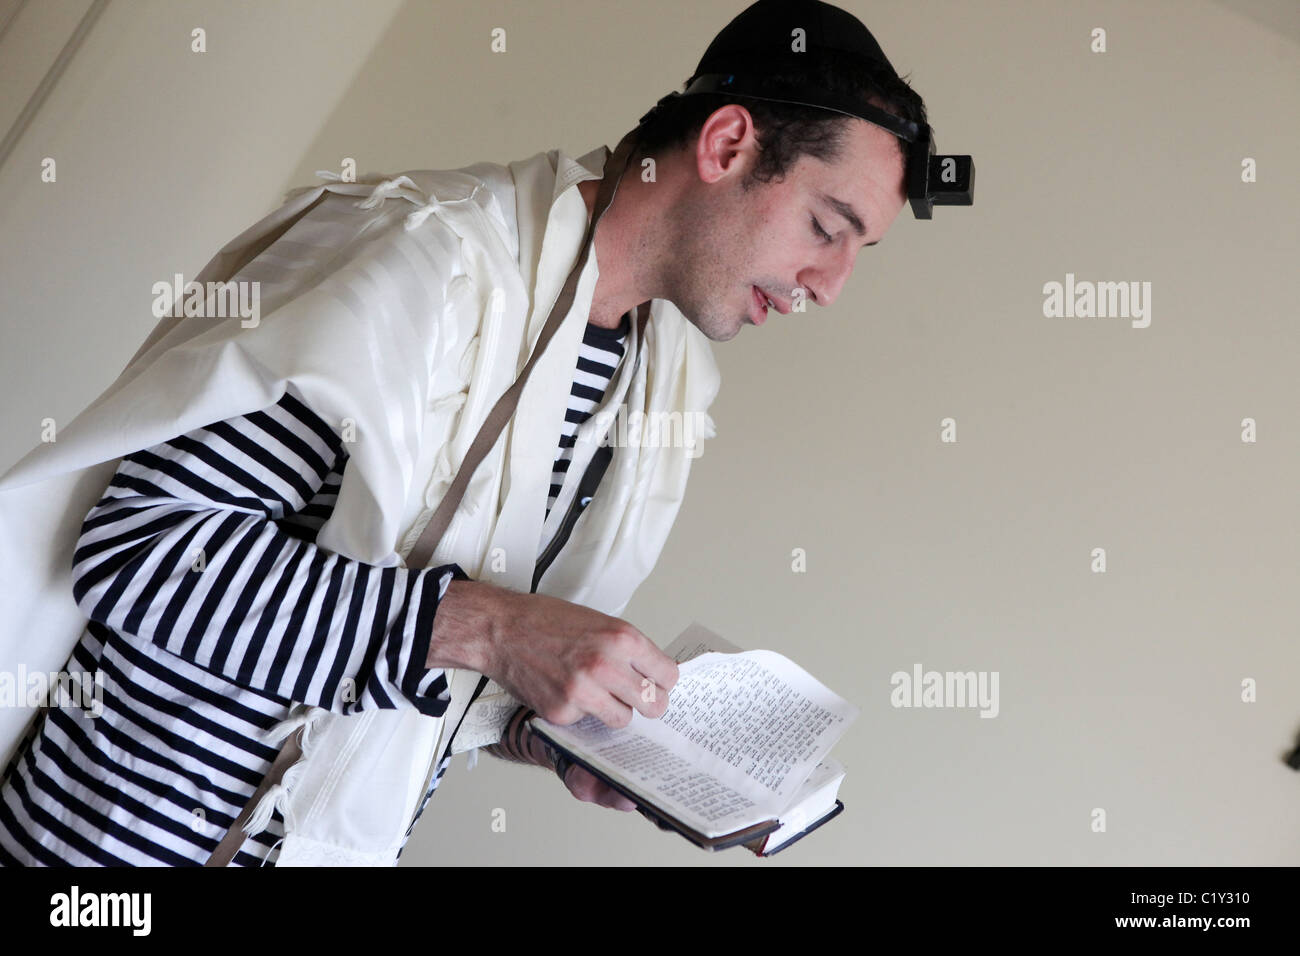 Young Jewish man with tallith and Tefillin - Stock Image